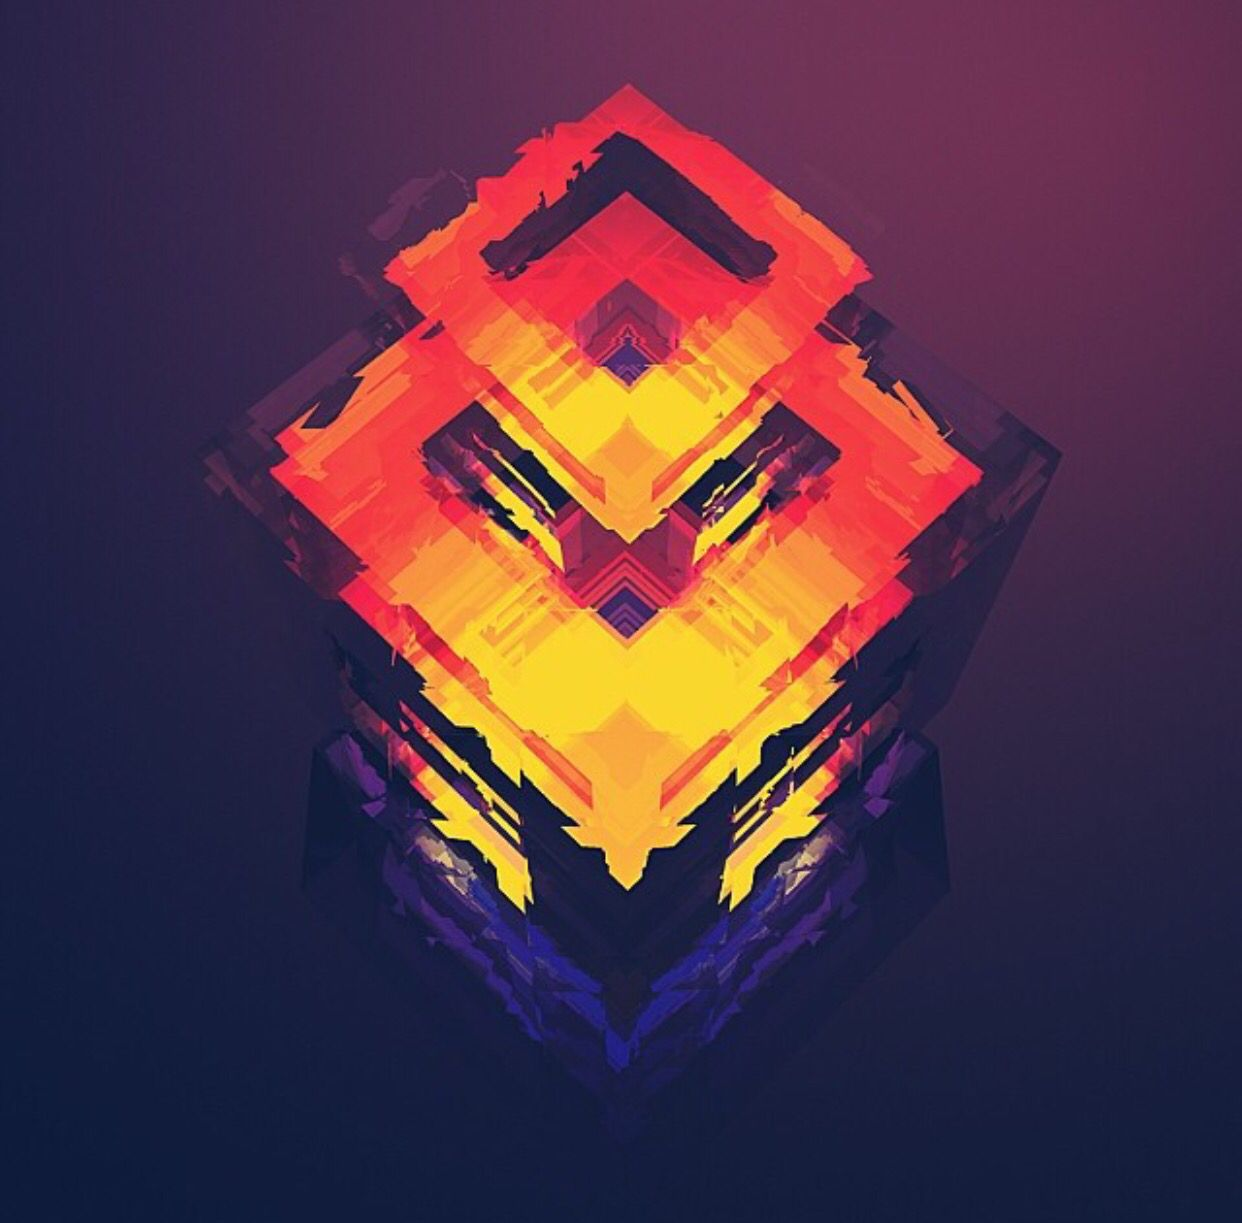 Mkbhd Wallpapers, Justin Maller